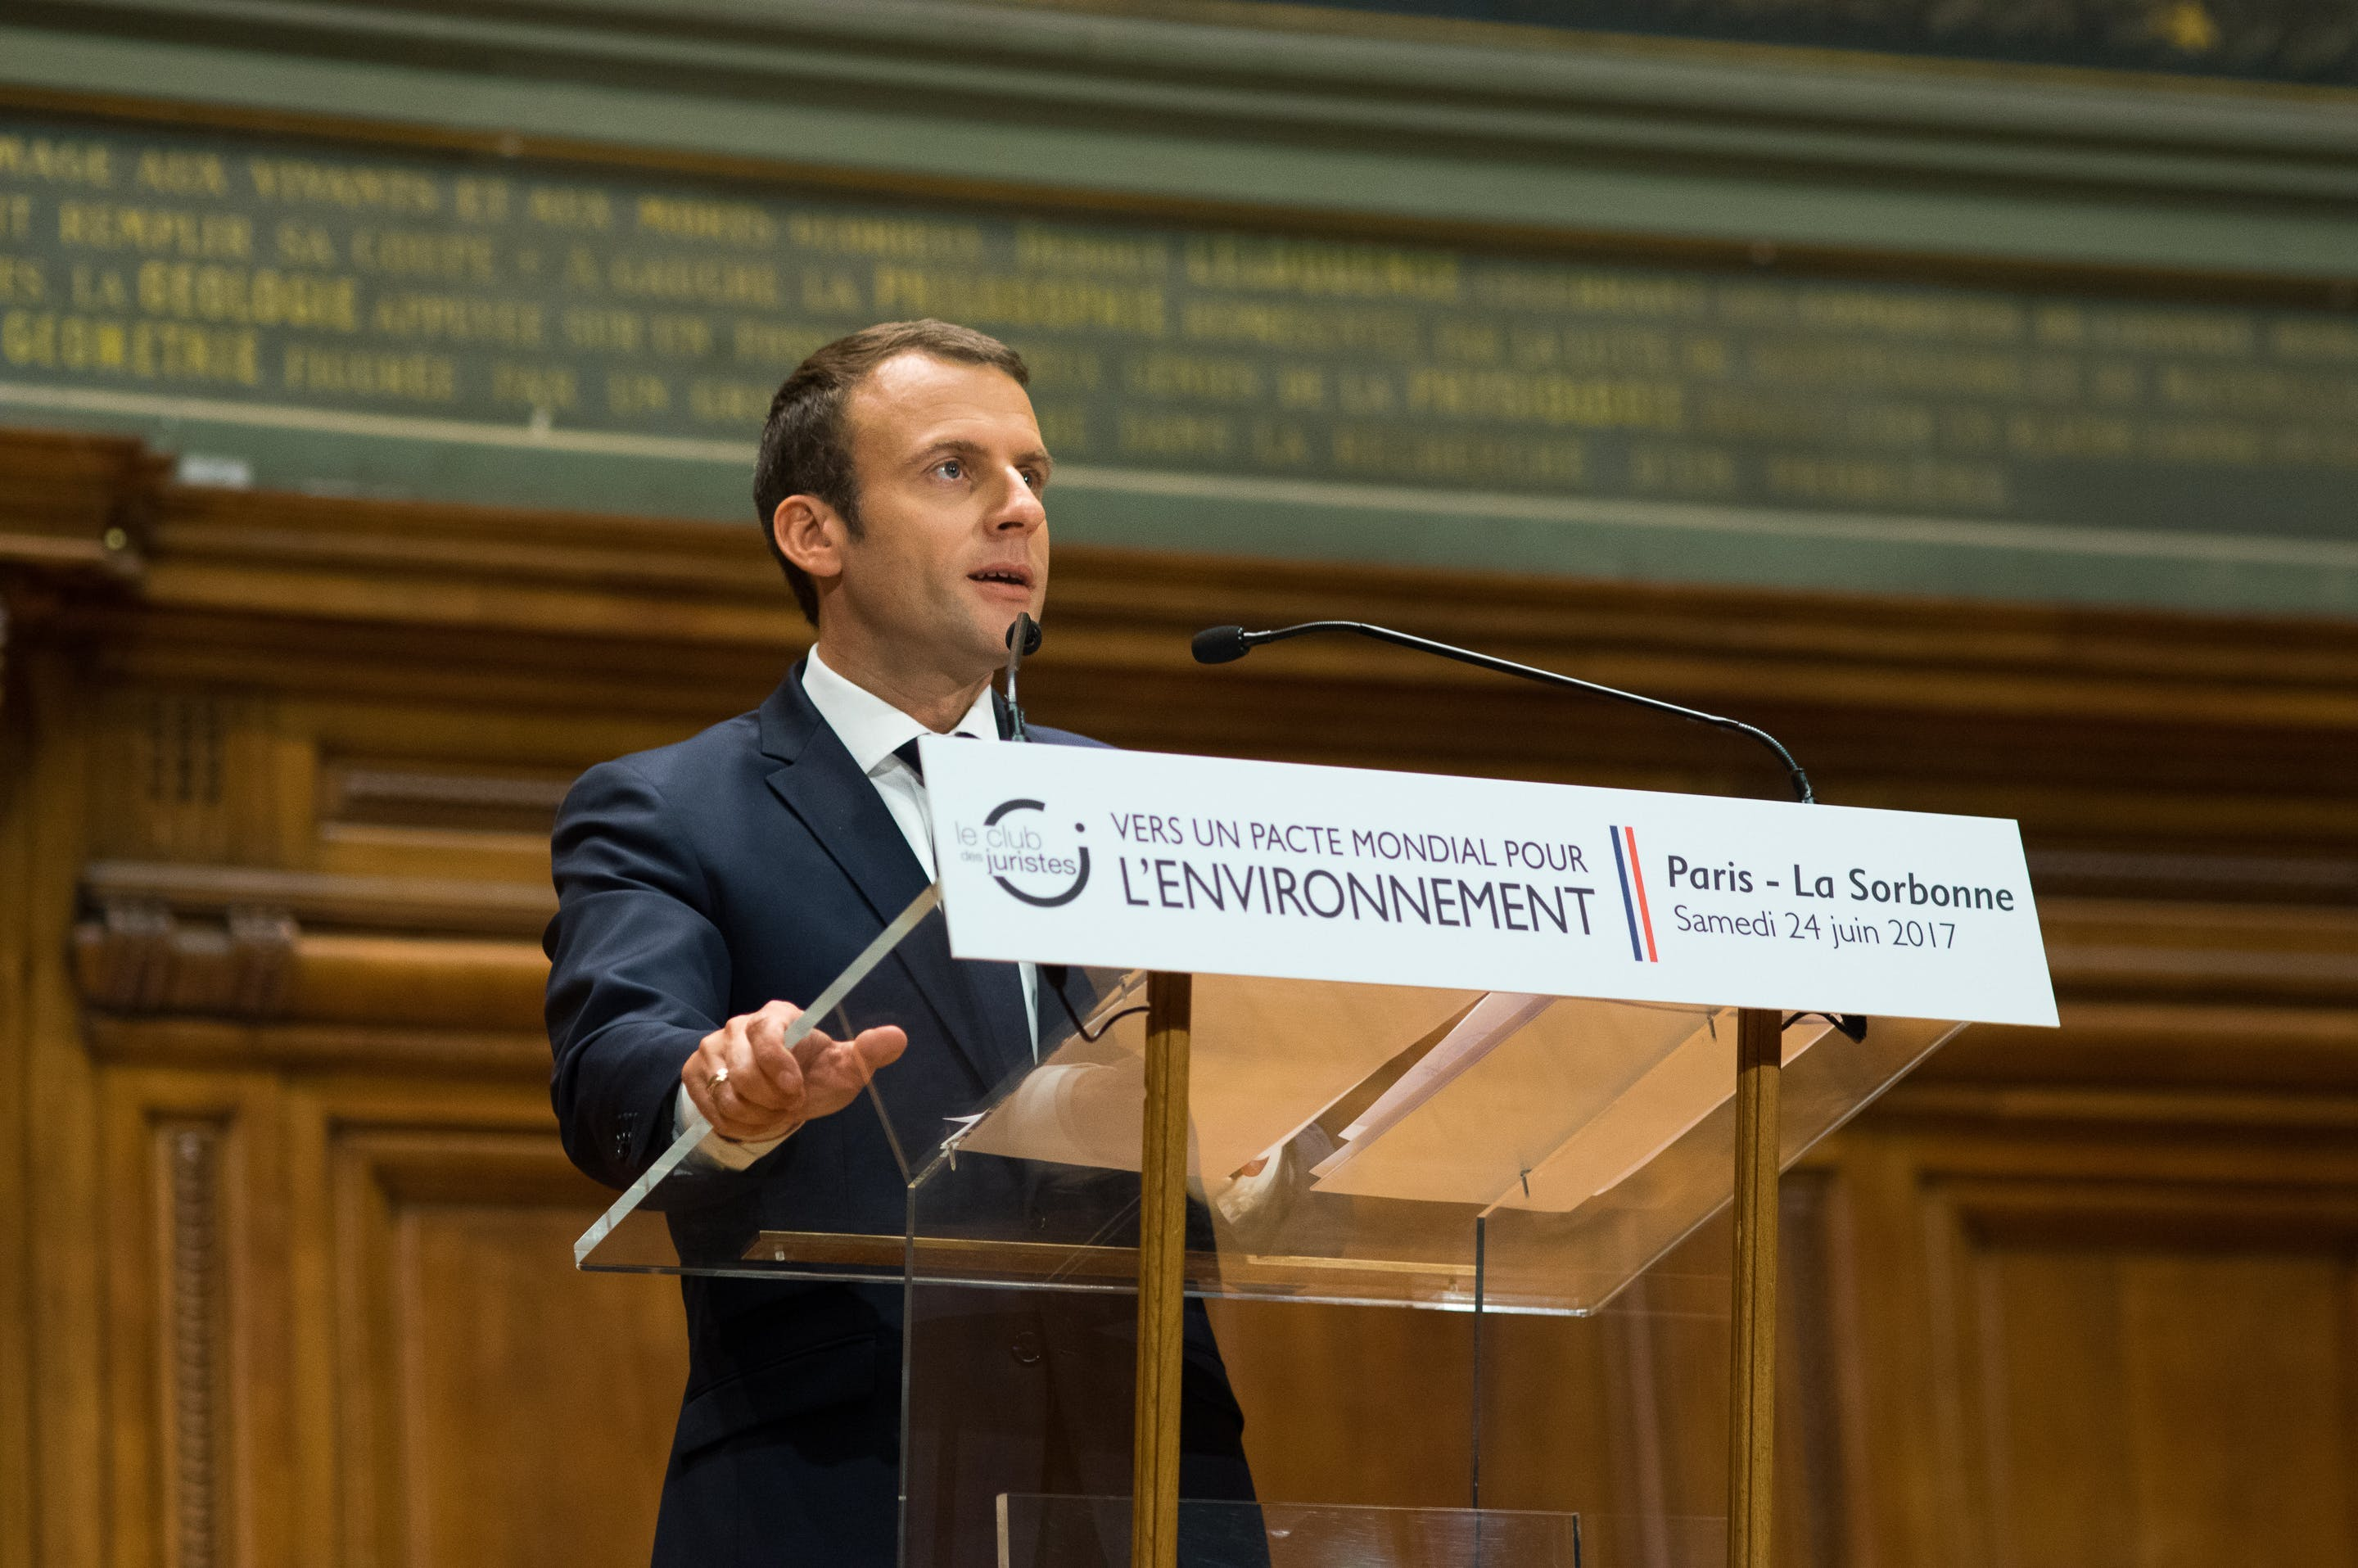 President Macron announces Global Pact for the Environment